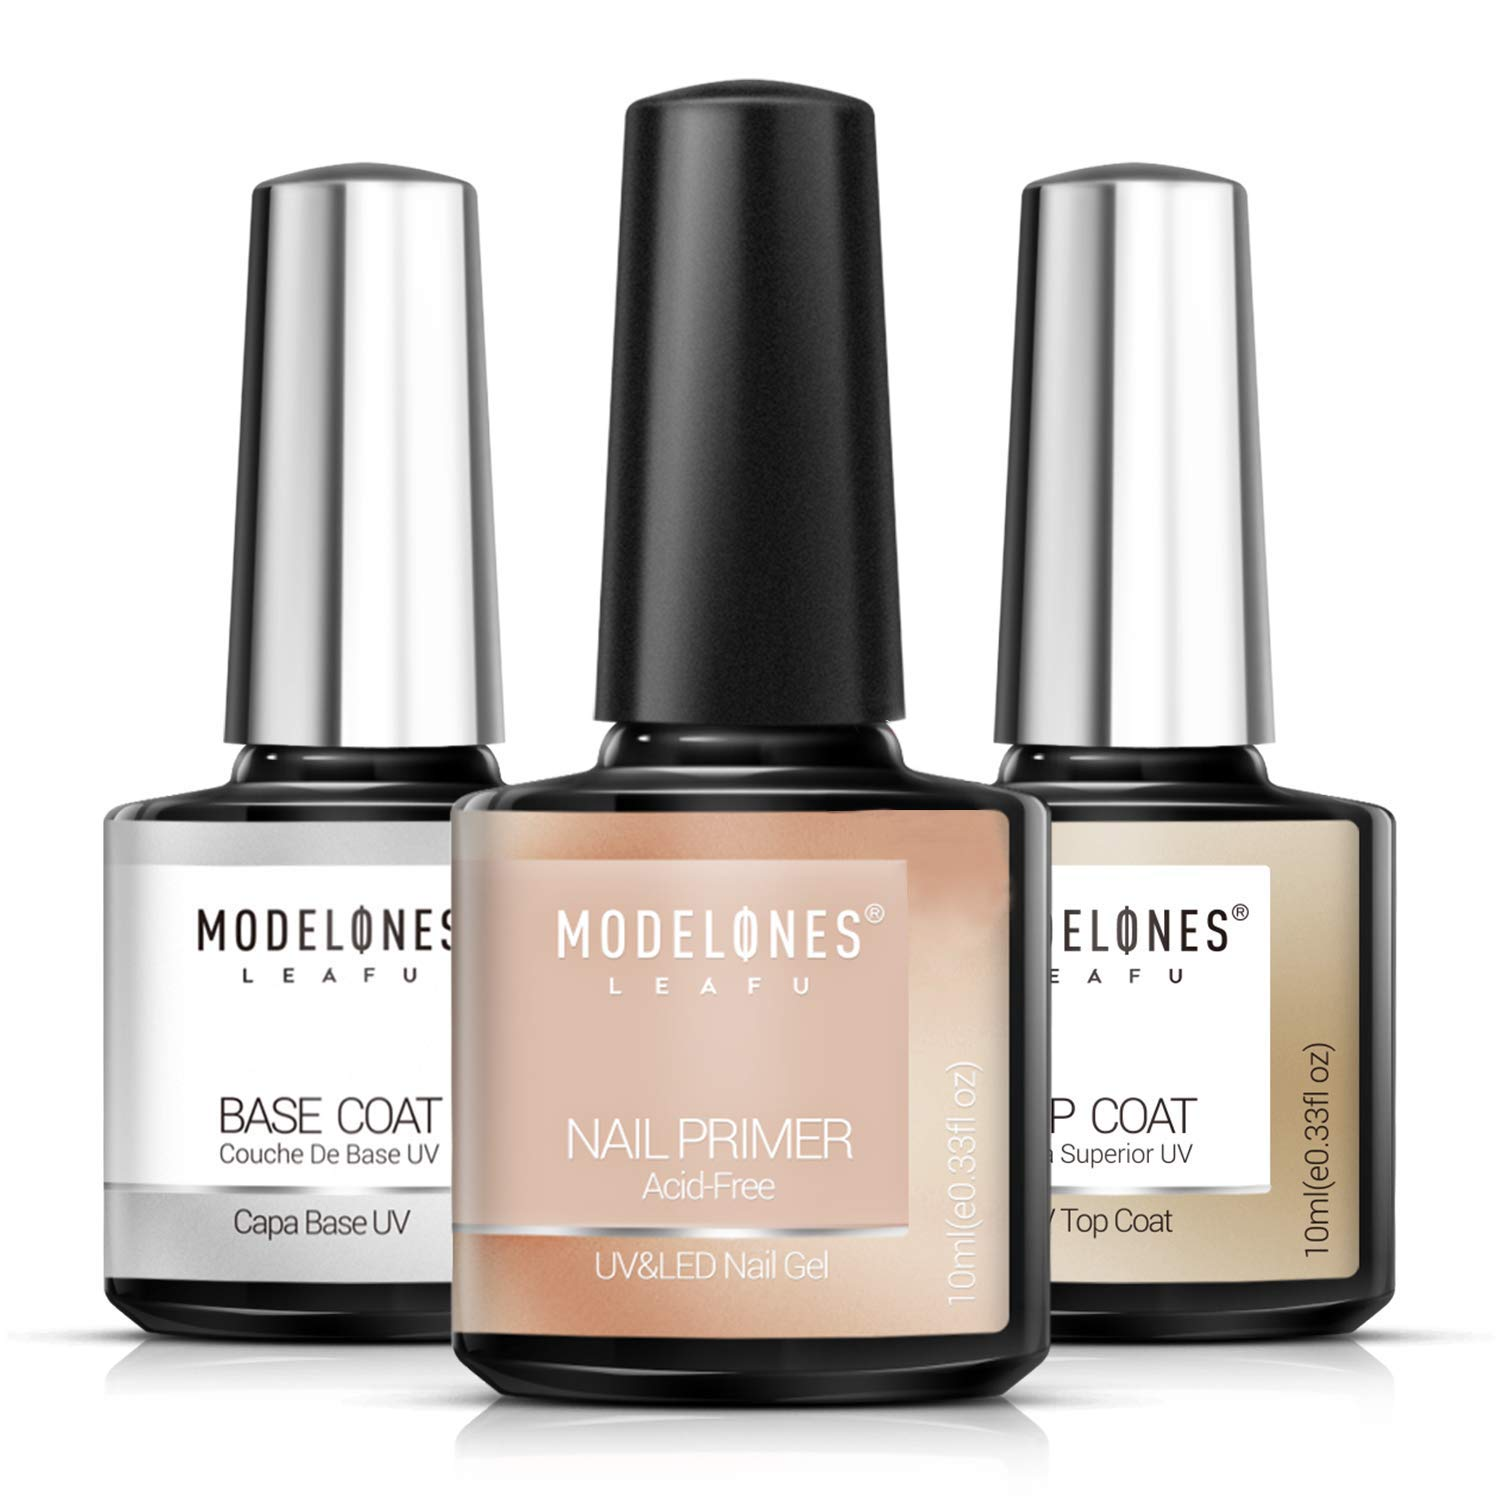 Modelones Gel Nail Polish 3Pcs 0.33 Oz Primer No Wipe Top and Base Coat Set, Non-acid Nail Primer, Shiny and Long-Lasting UV/LED Soak Off Gel Polish : Beauty